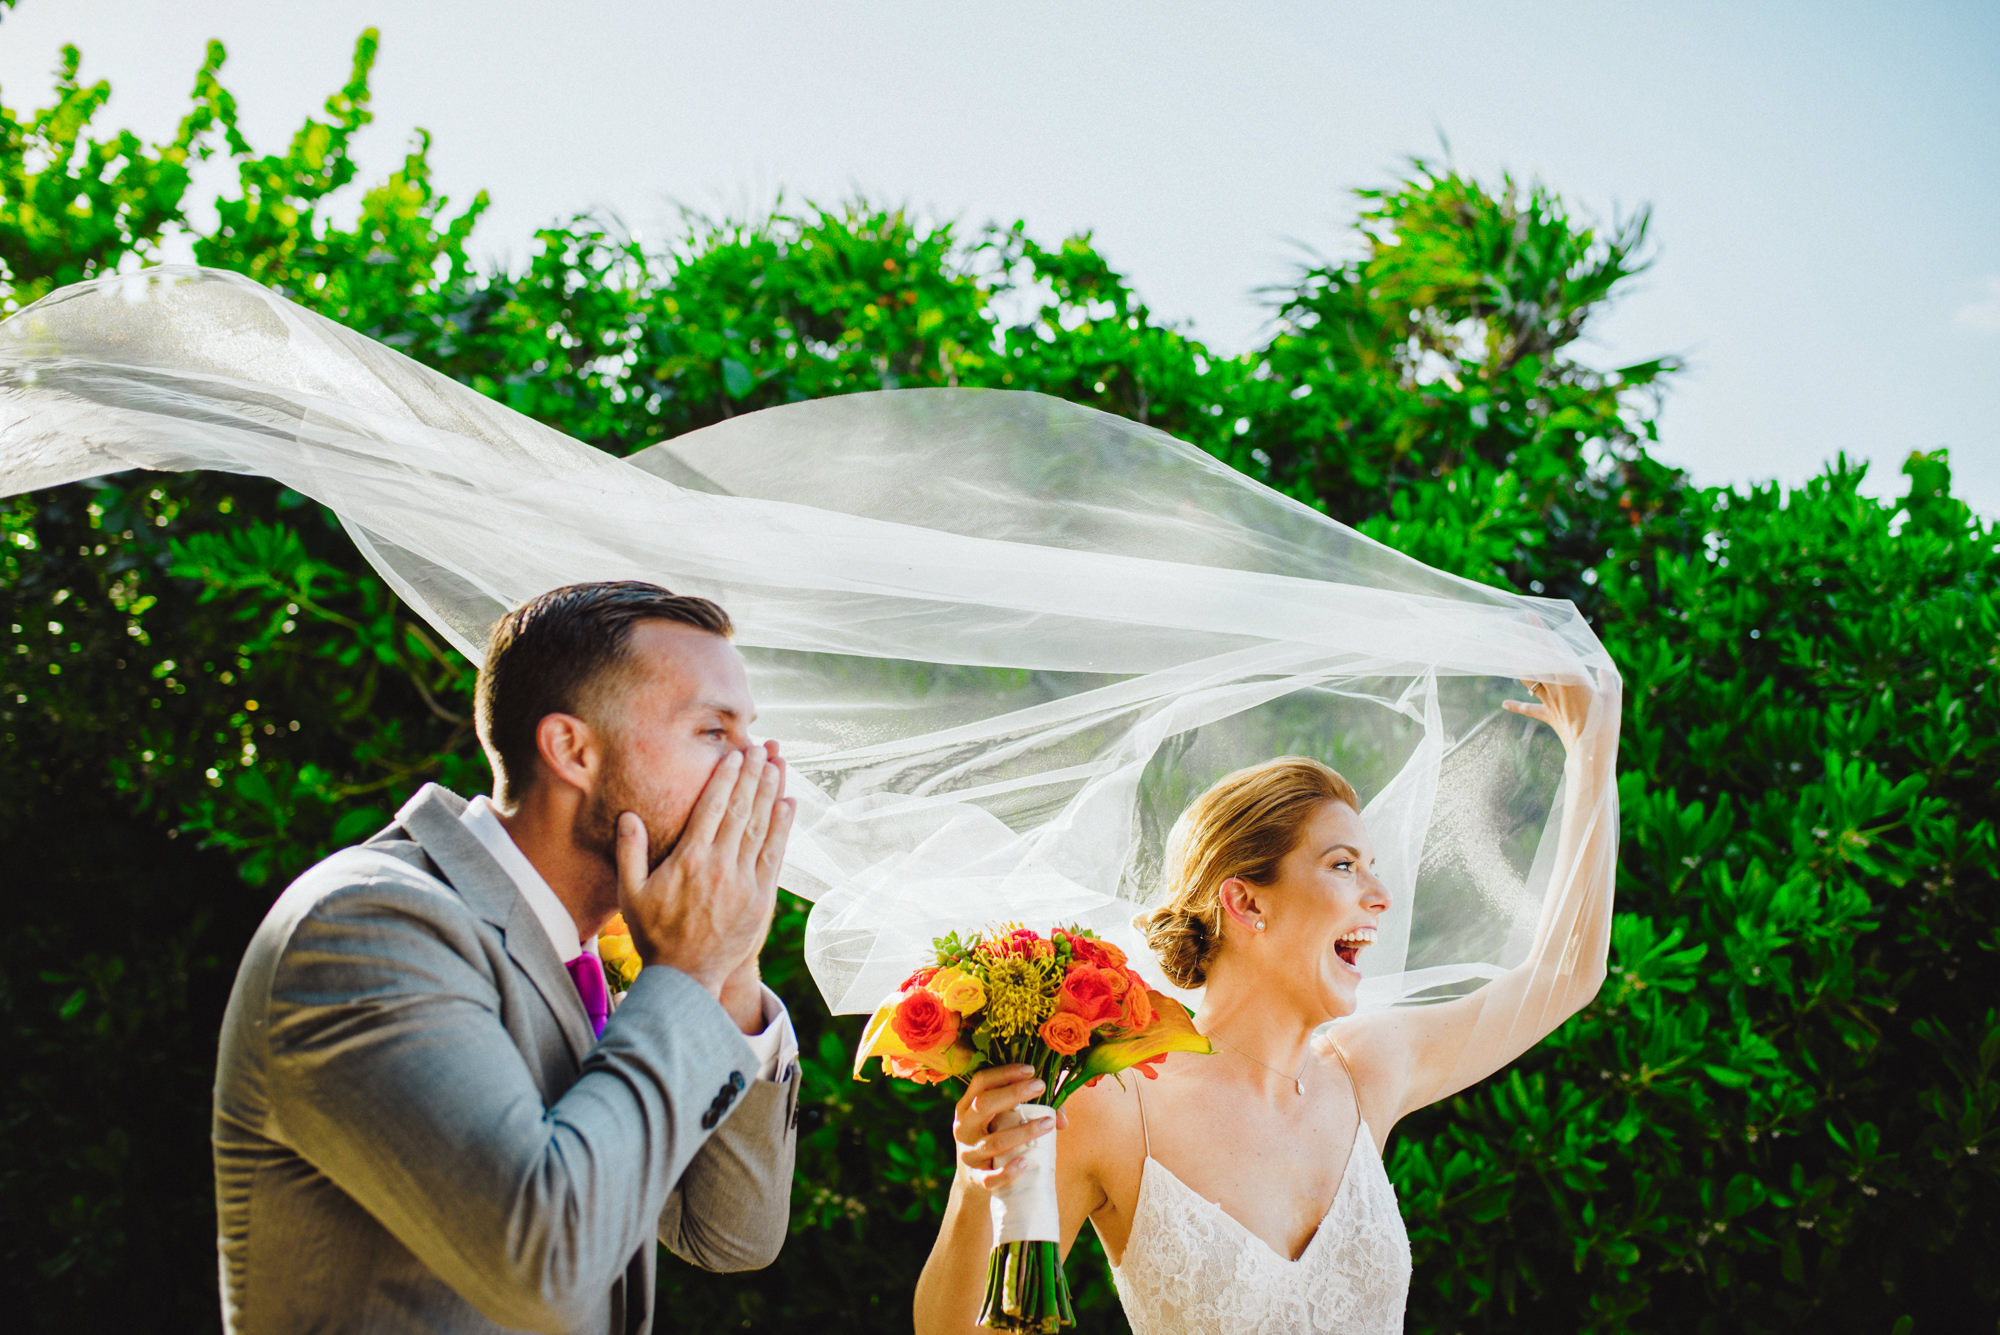 Bride with veil flying in the wind and groom cheering by Fer Juaristi